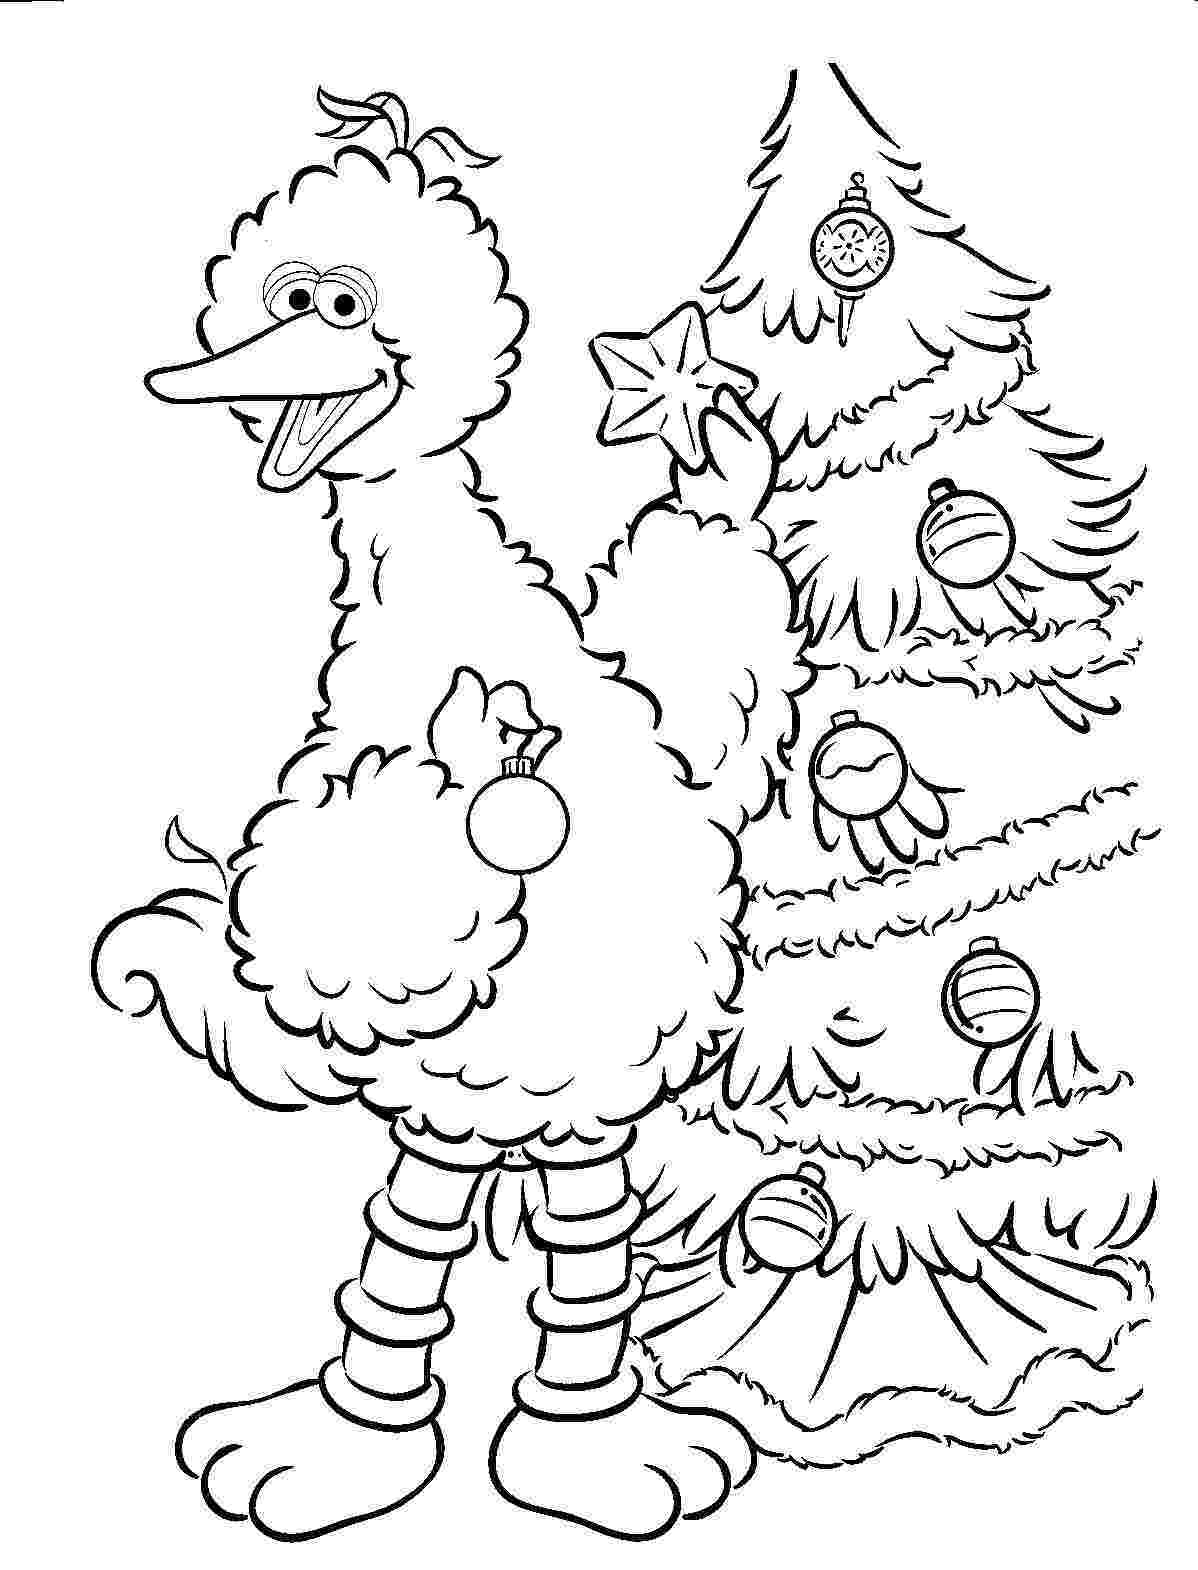 coloring pages of sesame street characters sesame street coloring pages quickly usage educative sesame coloring characters of pages street